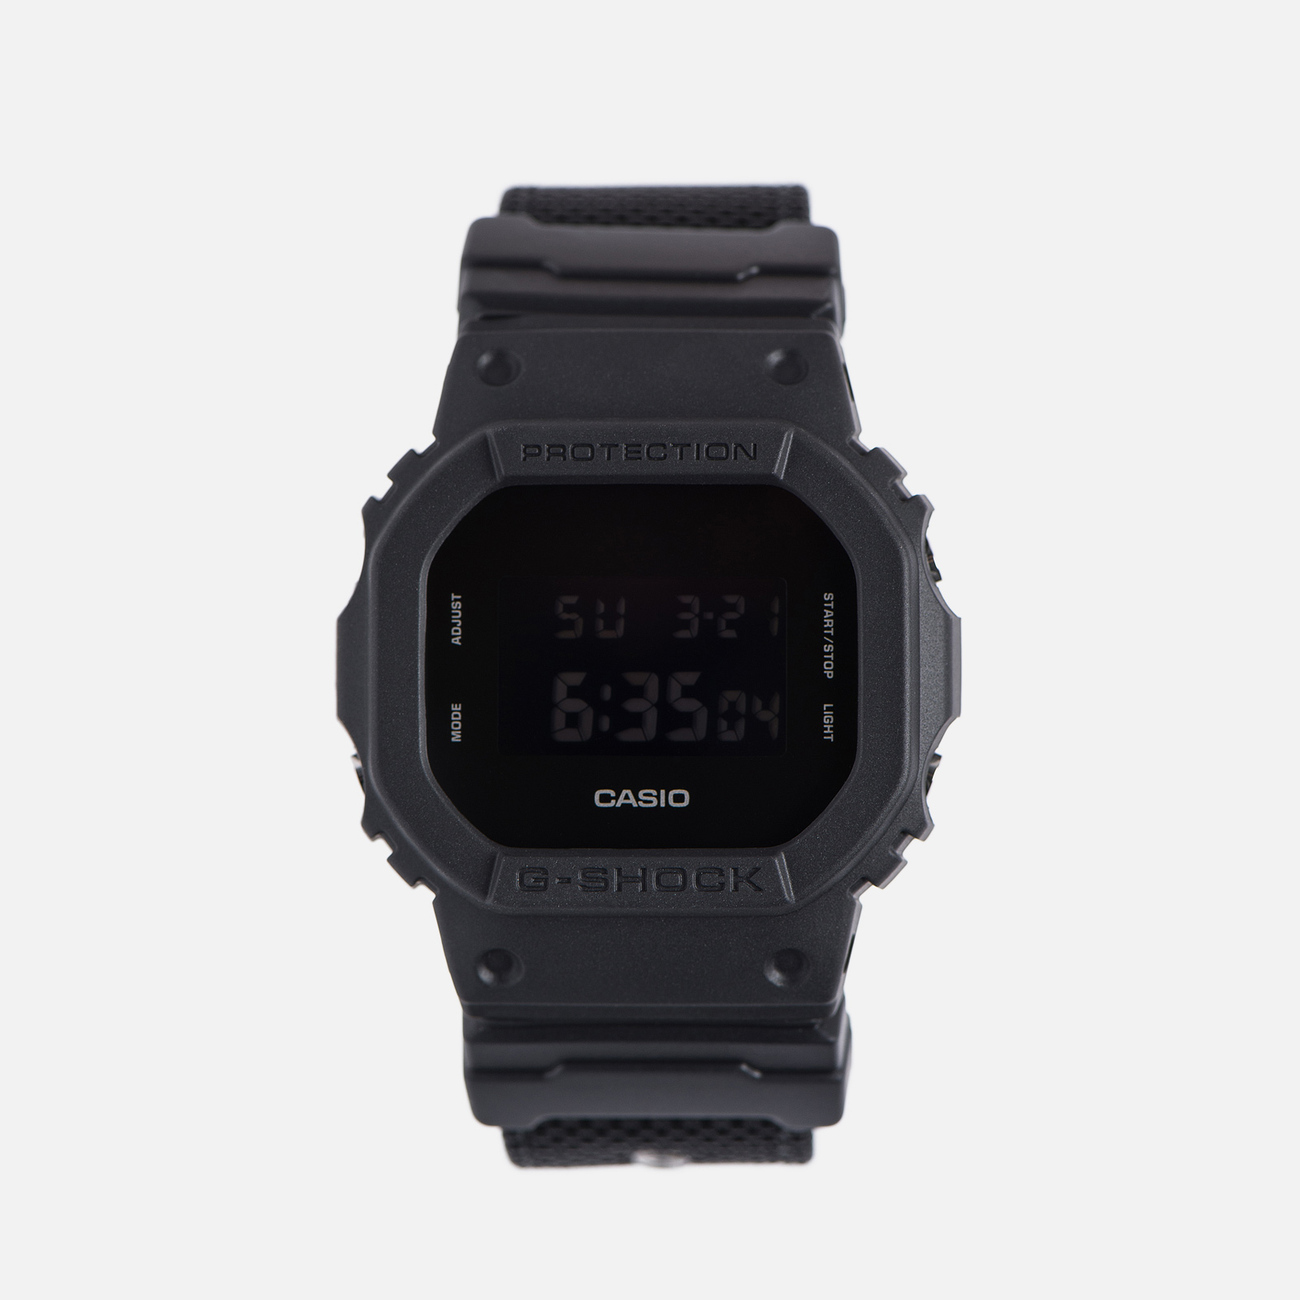 Наручные часы CASIO G-SHOCK DW-5600BBN-1E Cordura Series Military Black